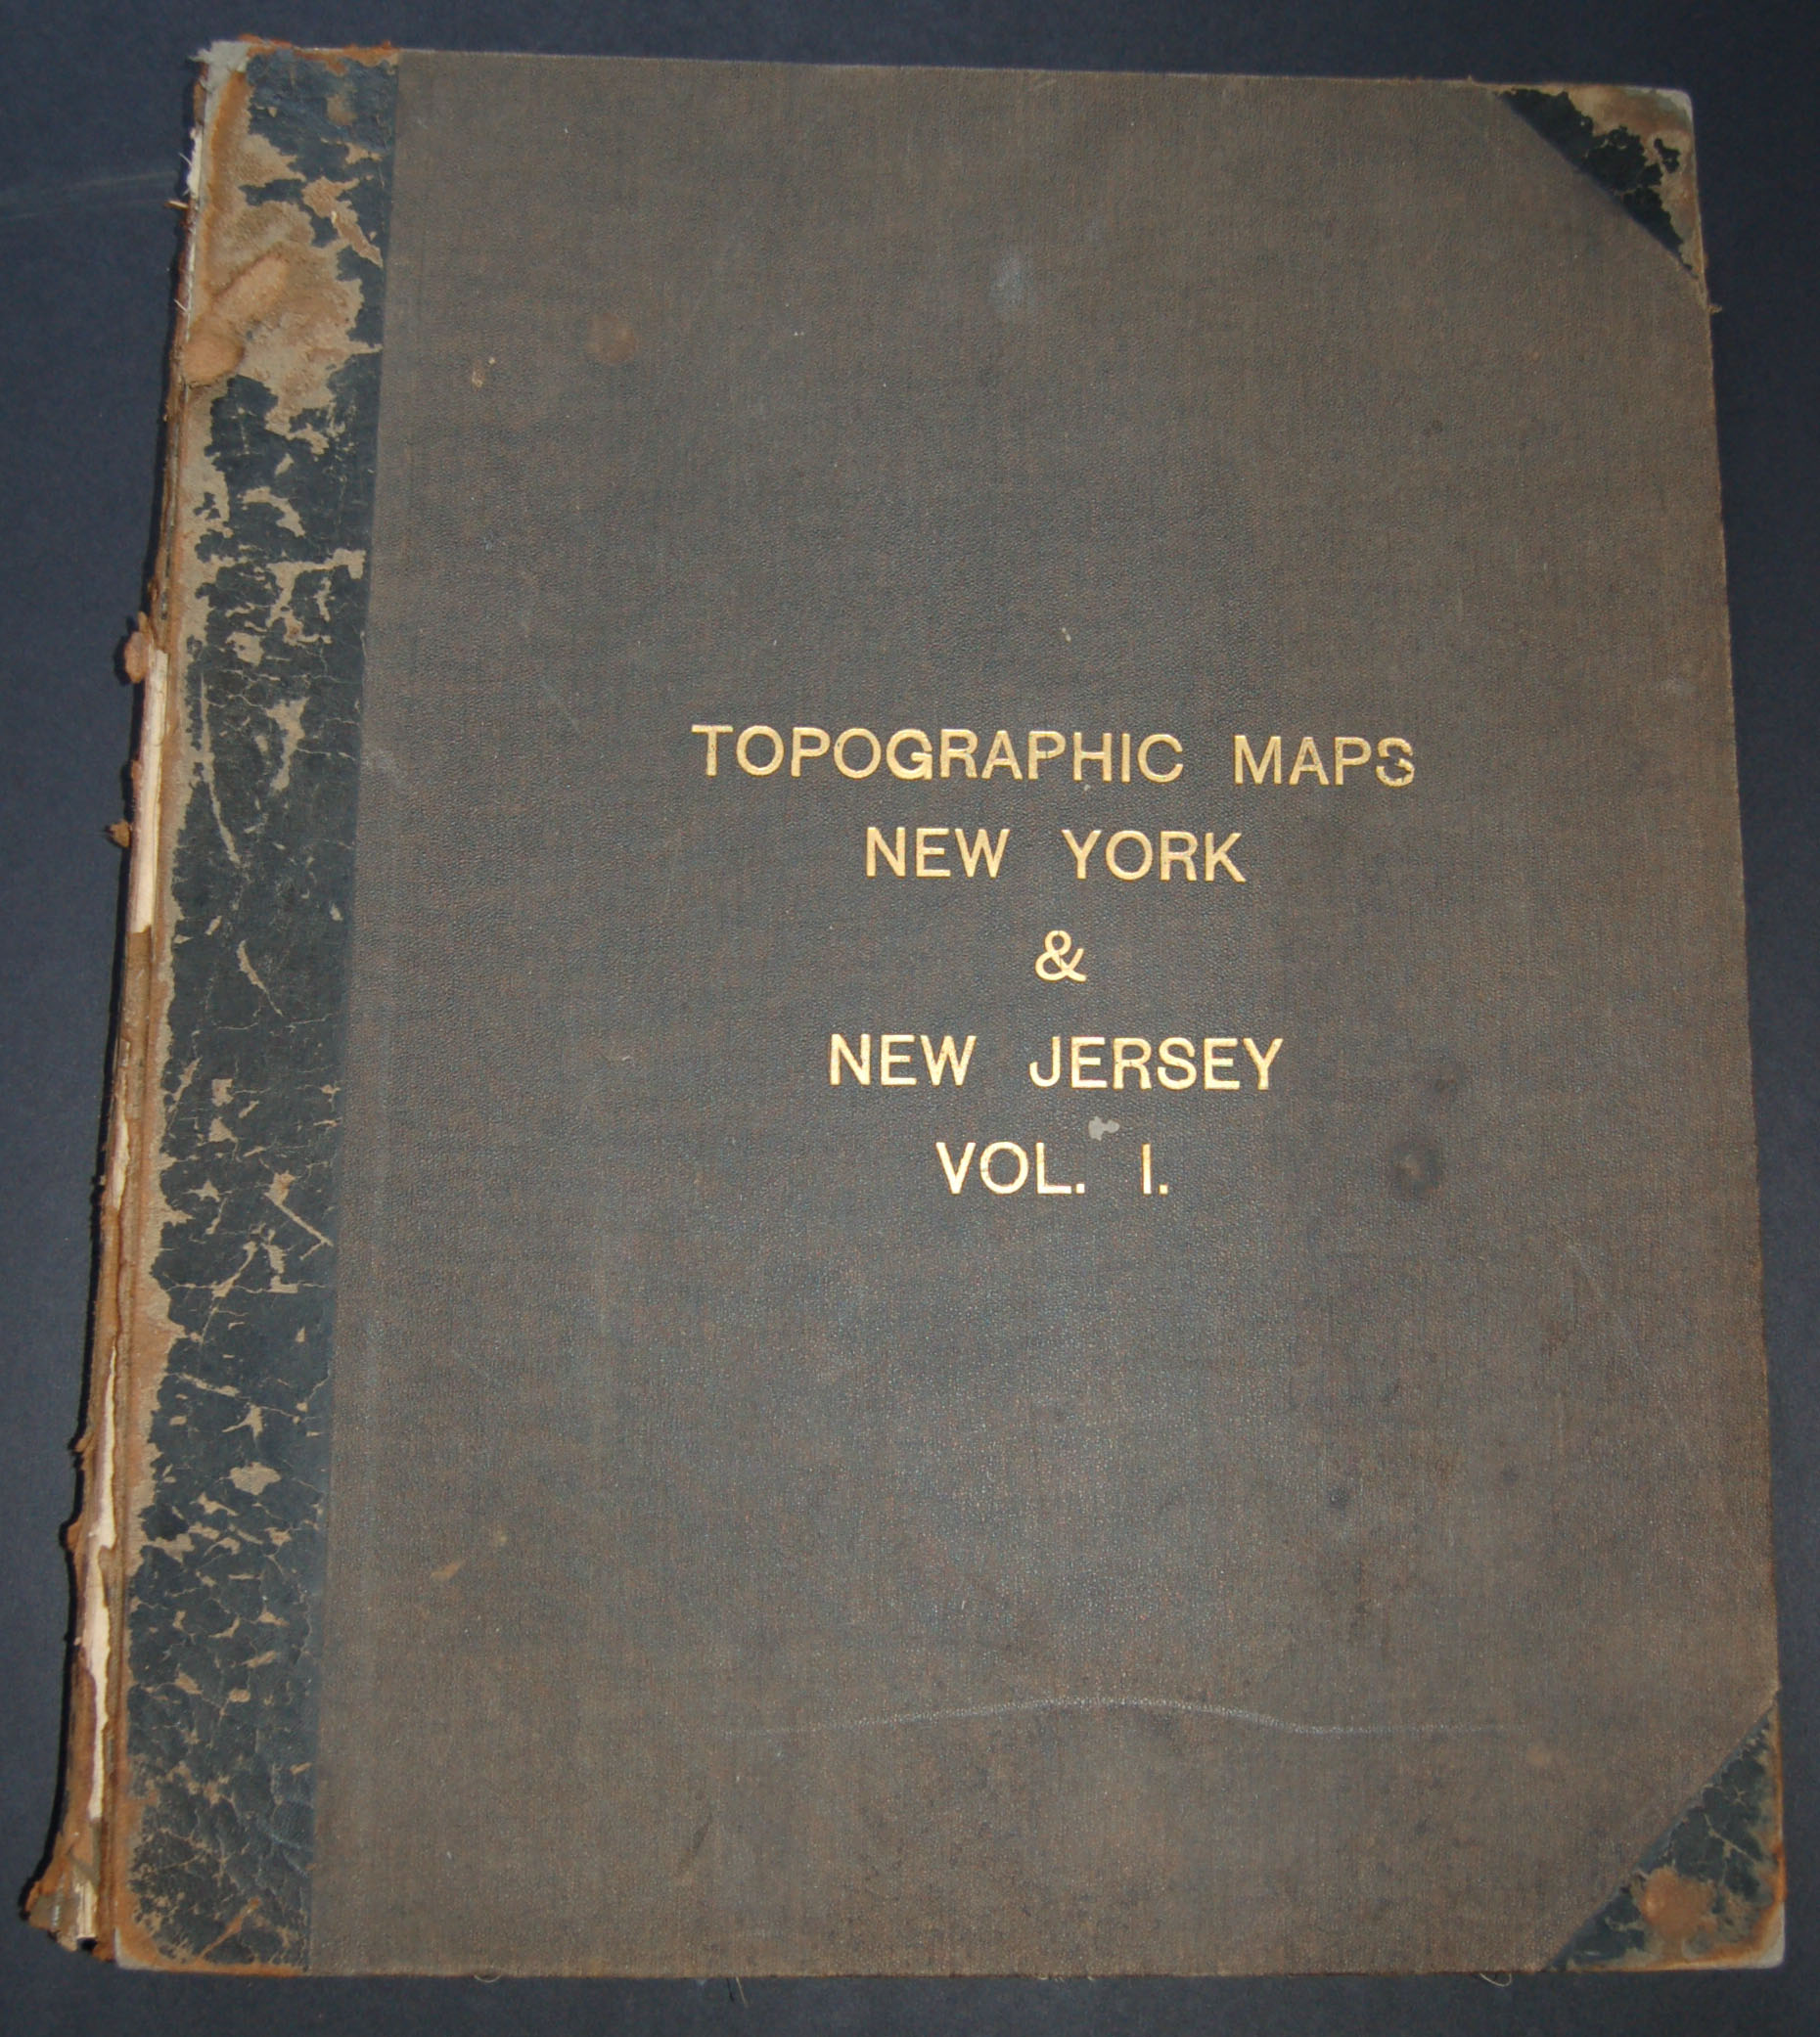 Topographic Maps New York & New Jersey Vol. 1